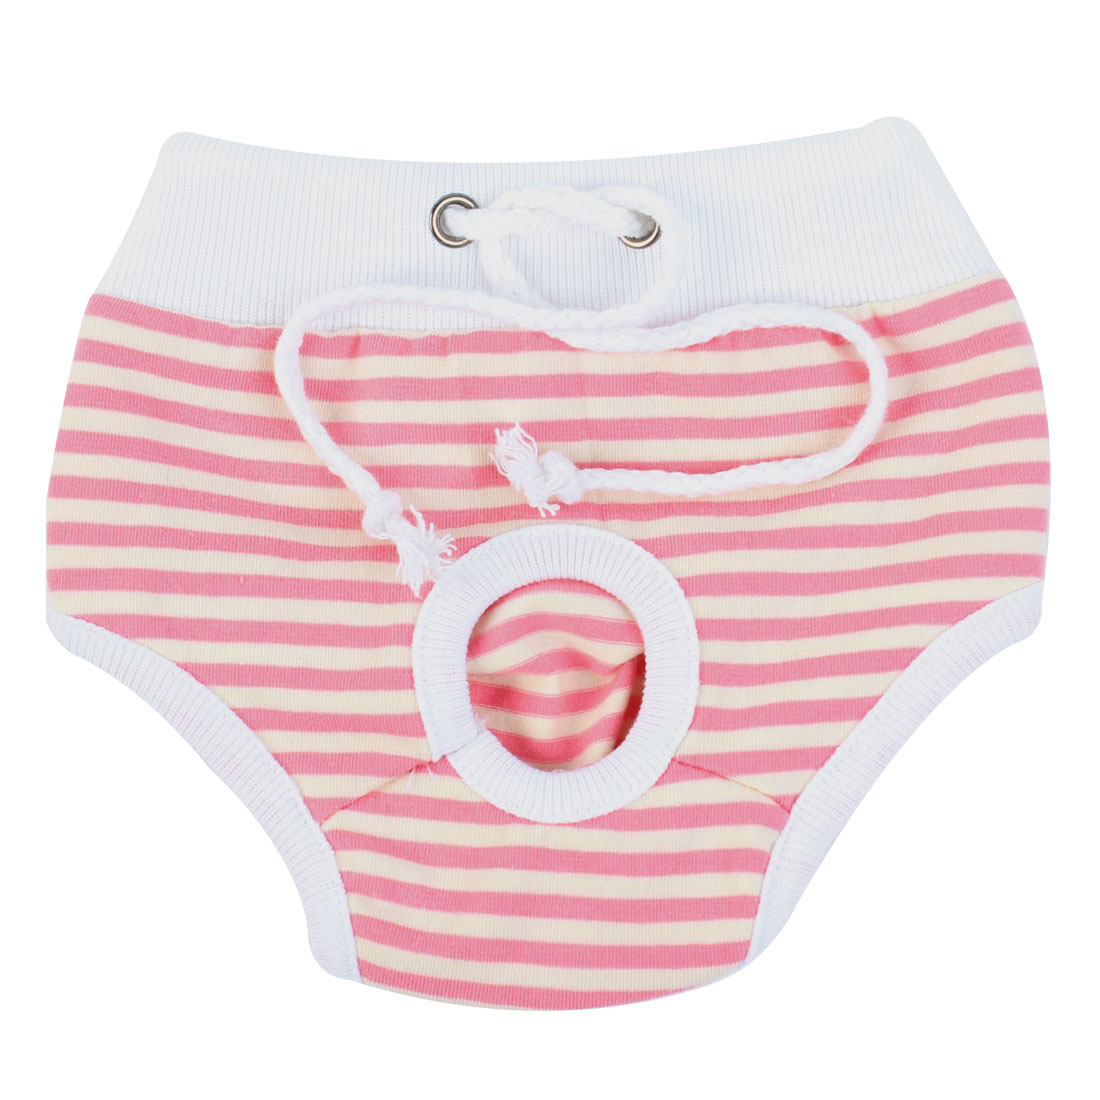 Pink White Striped Detail Drawstring Closure Pet Dog Puppy Waist Diaper Pants XS